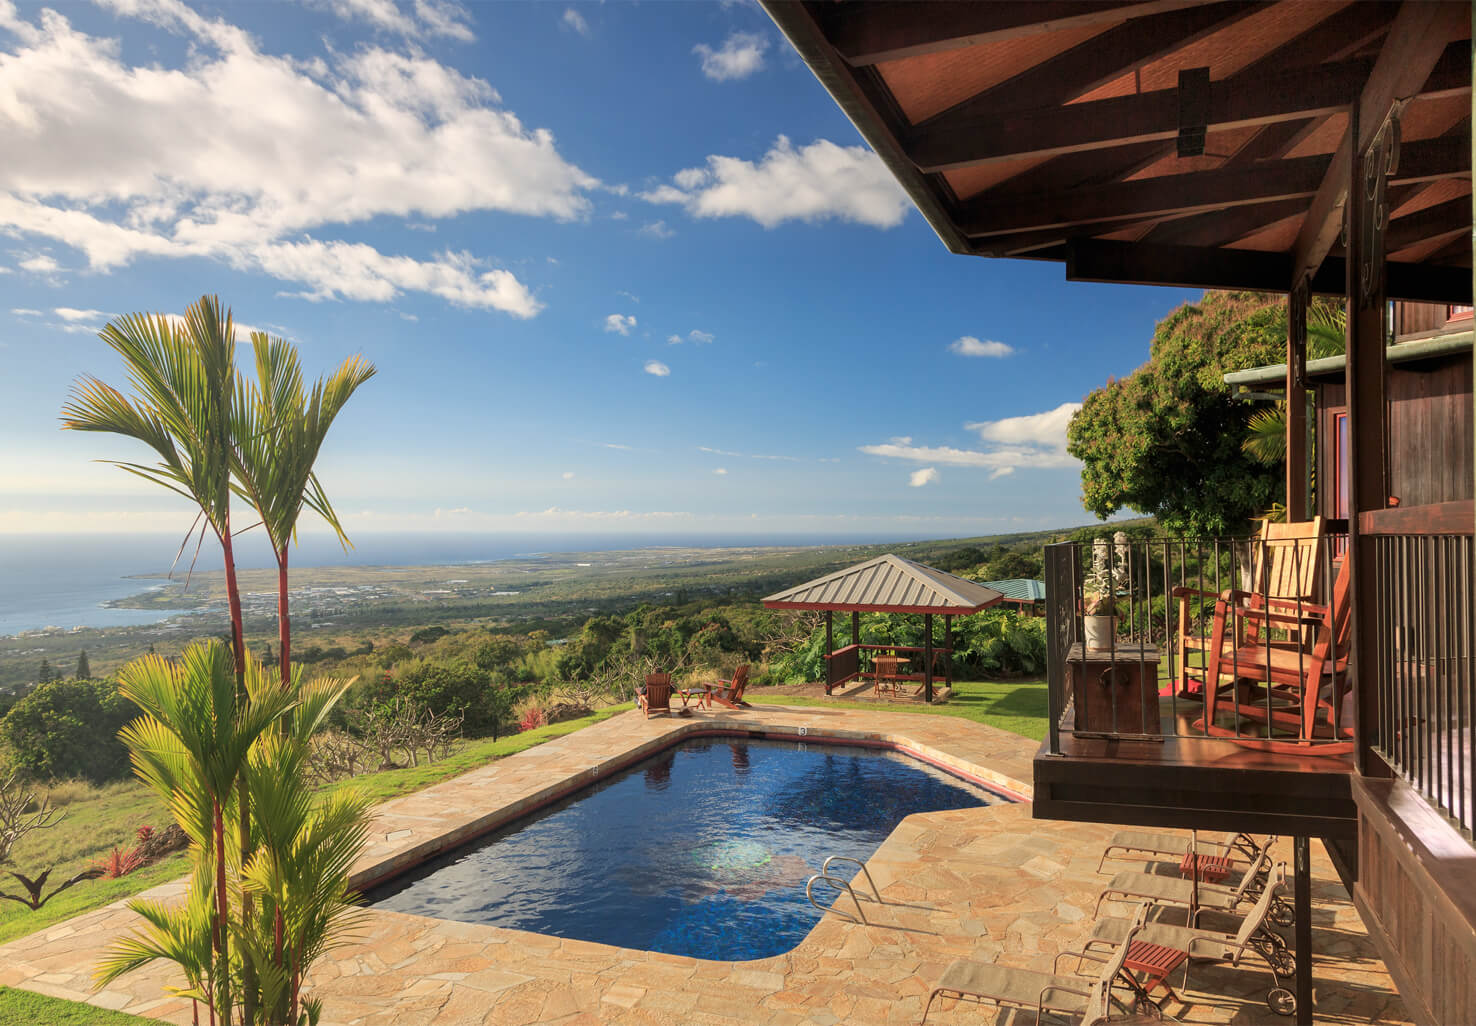 Pool and tropical grouds overlooking the Kona coast at Big Island coffee estate